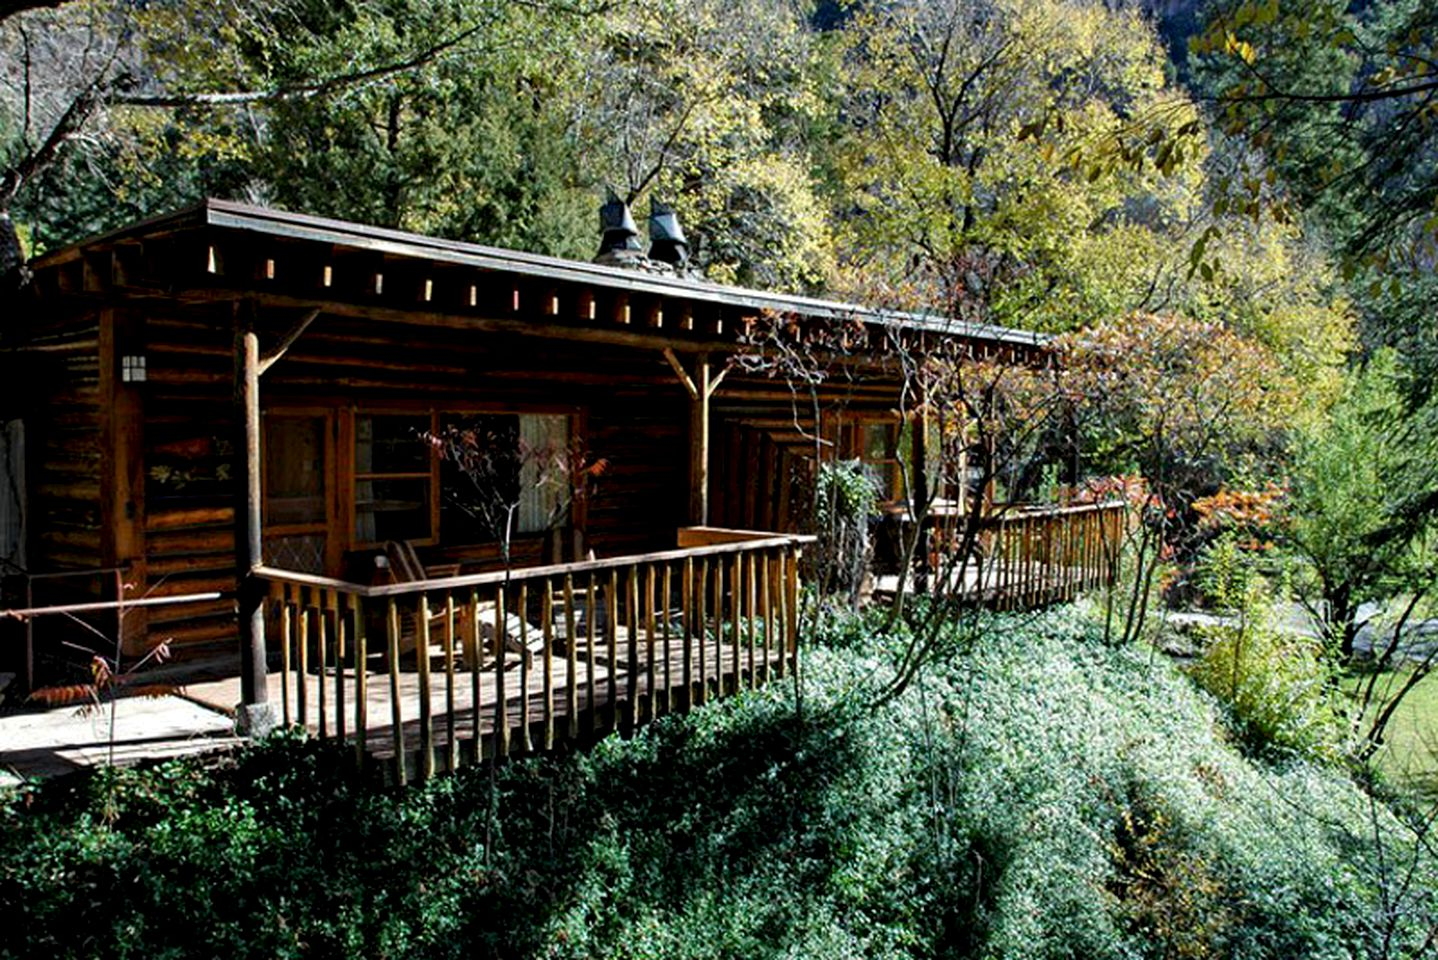 Cabins (Sedona, Arizona, United States)